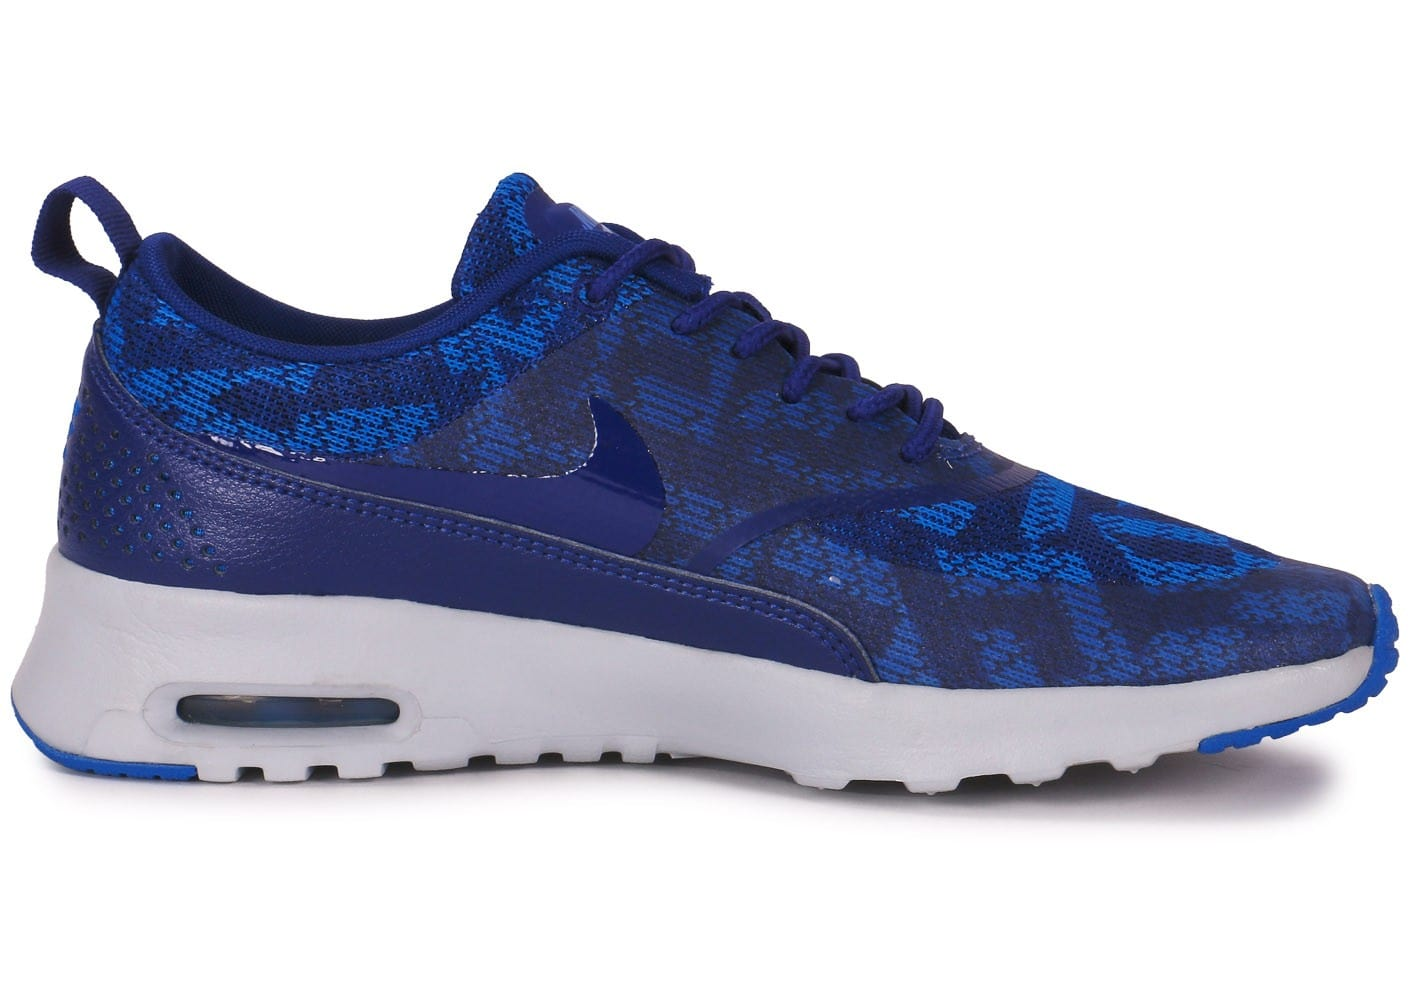 nike air max thea jacquard bleue chaussures chaussures chausport. Black Bedroom Furniture Sets. Home Design Ideas